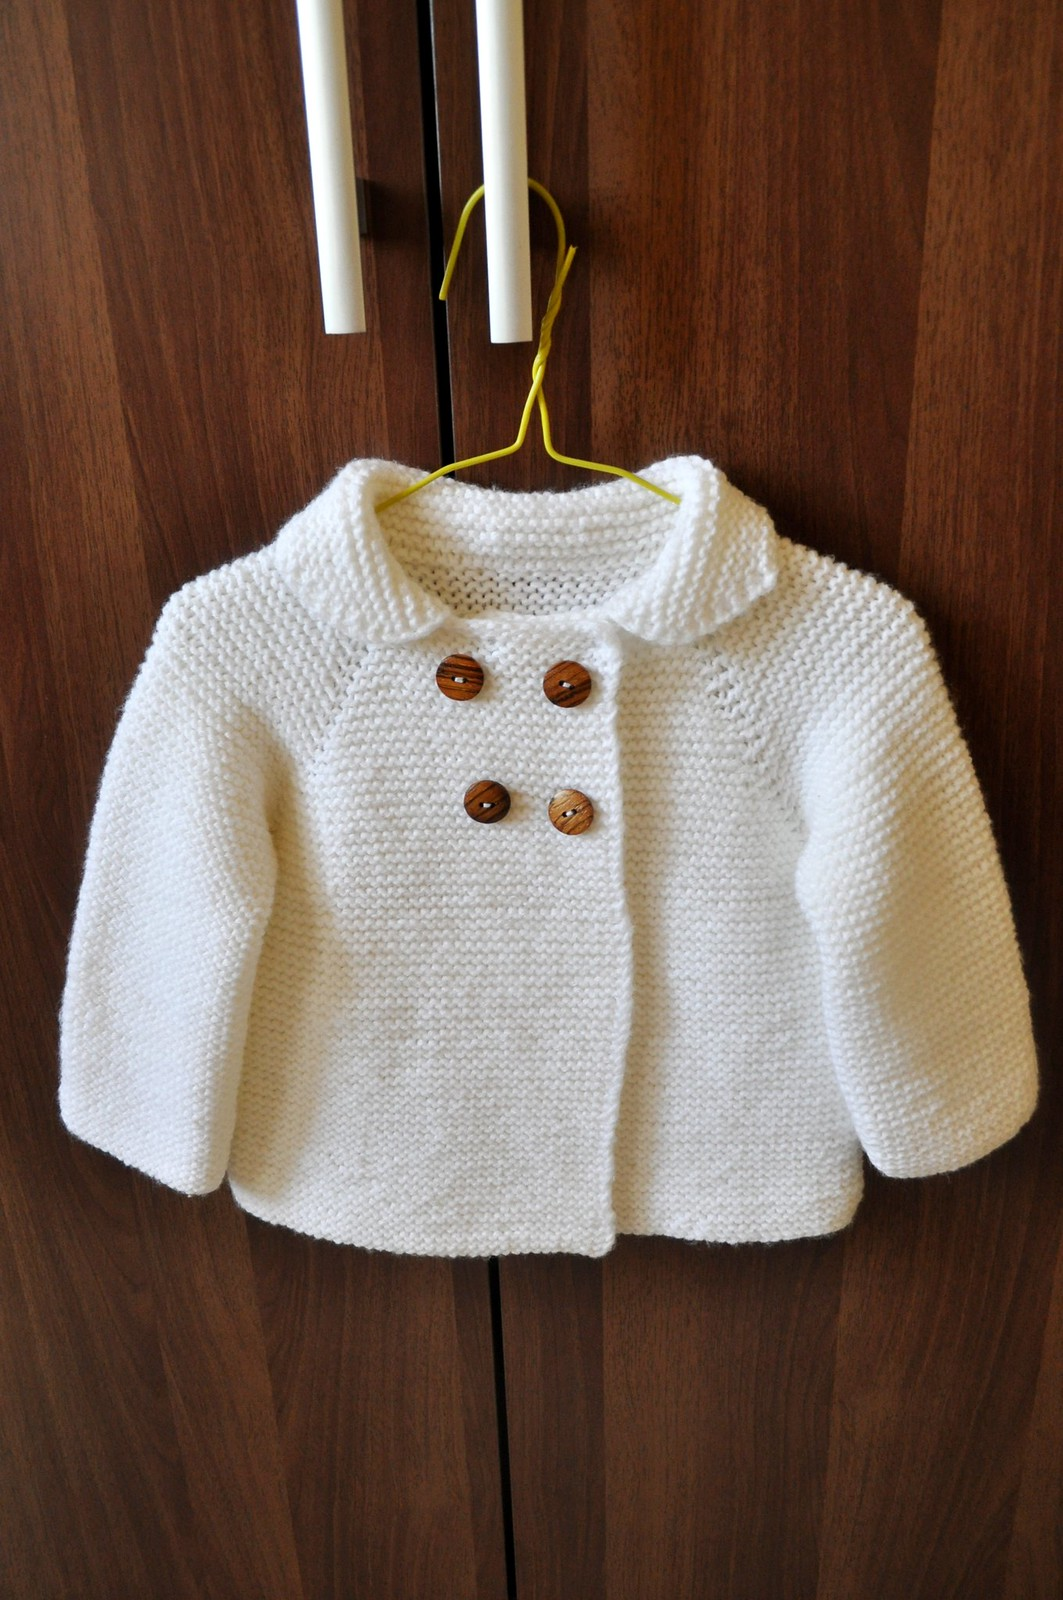 knitted baby cardigan (14)